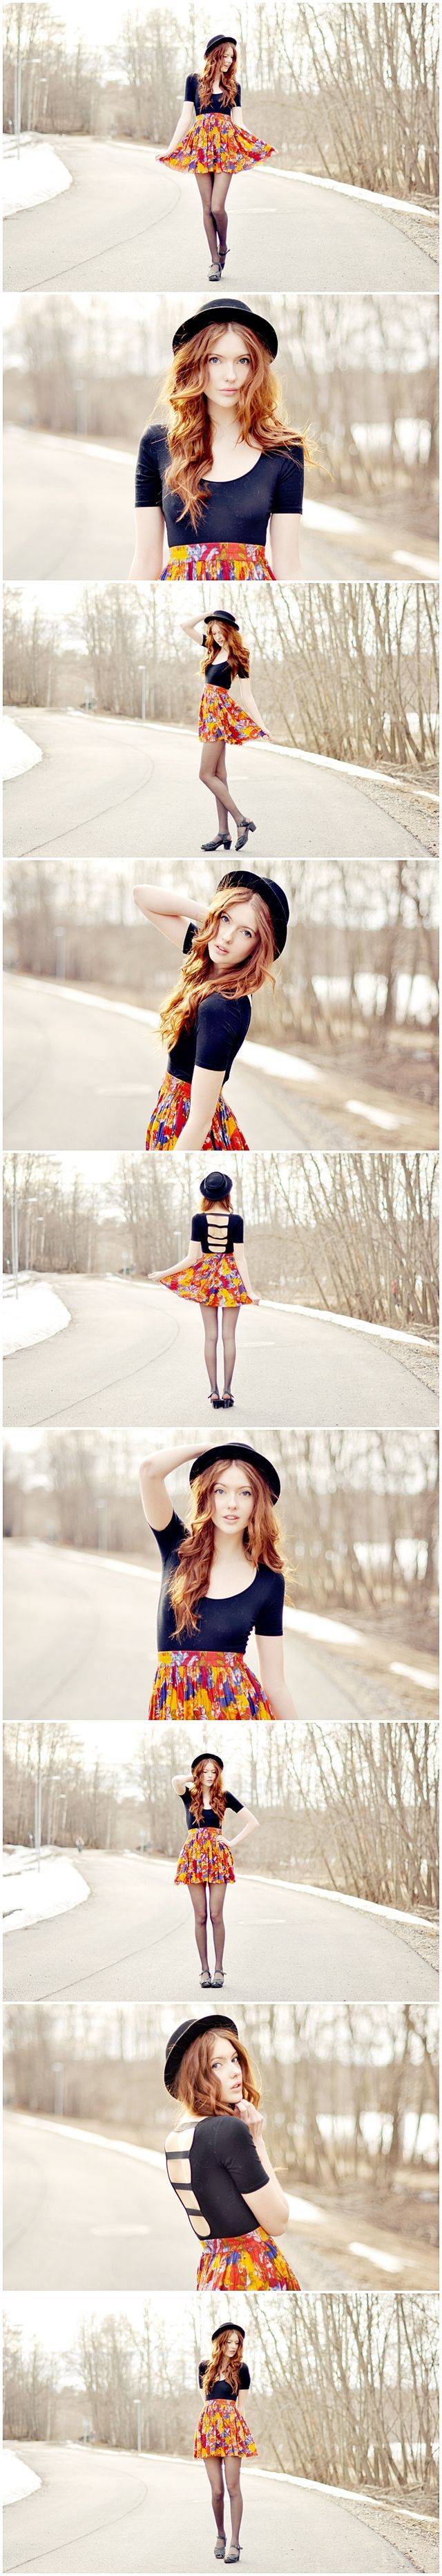 Fantastic series! Fashion inspired senior girl photography poses posing